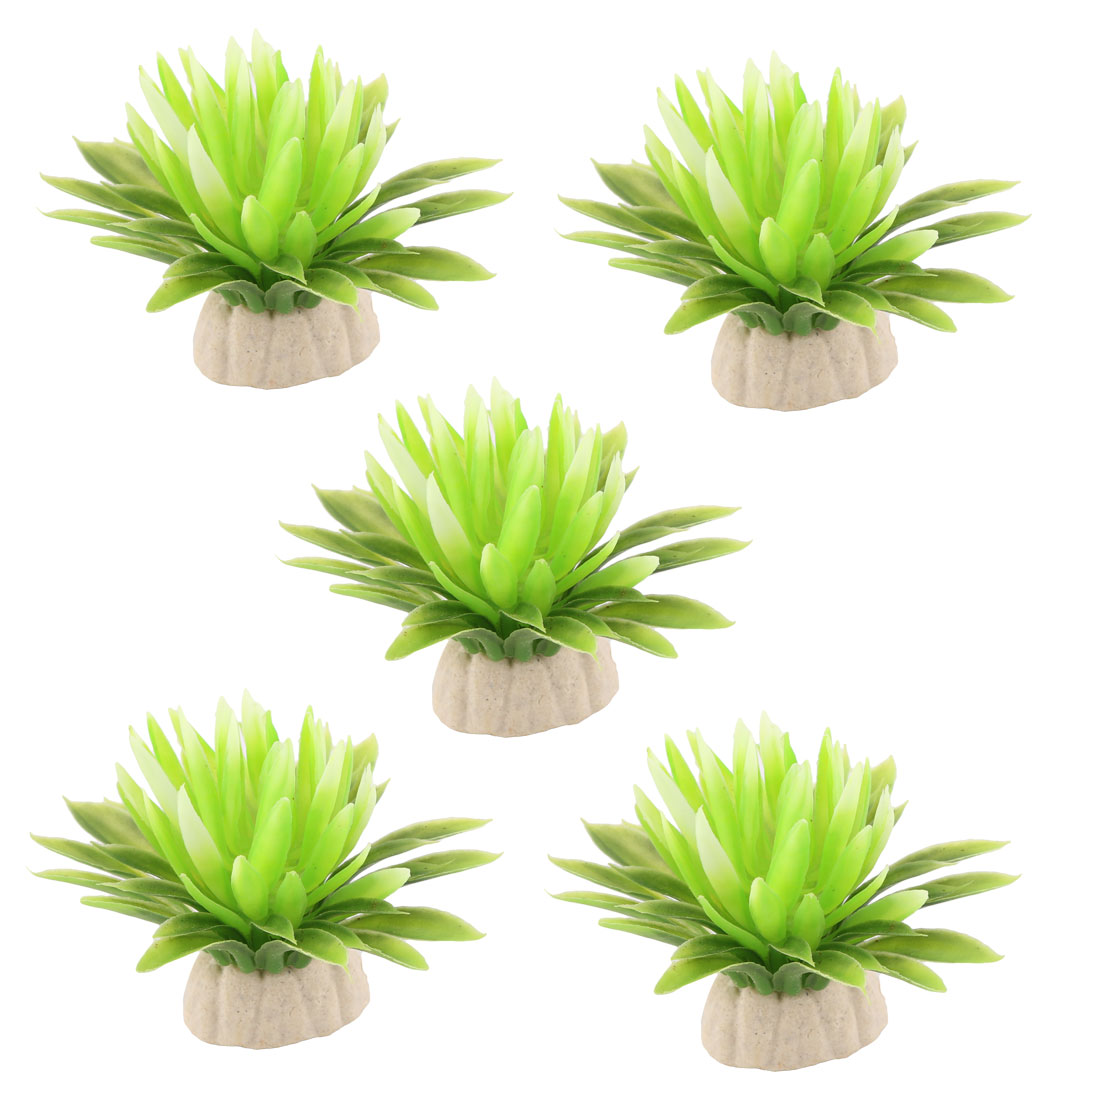 Aquarium Fish Tank Plastic Artificial Underwater Grass Plant Decor Green 5pcs